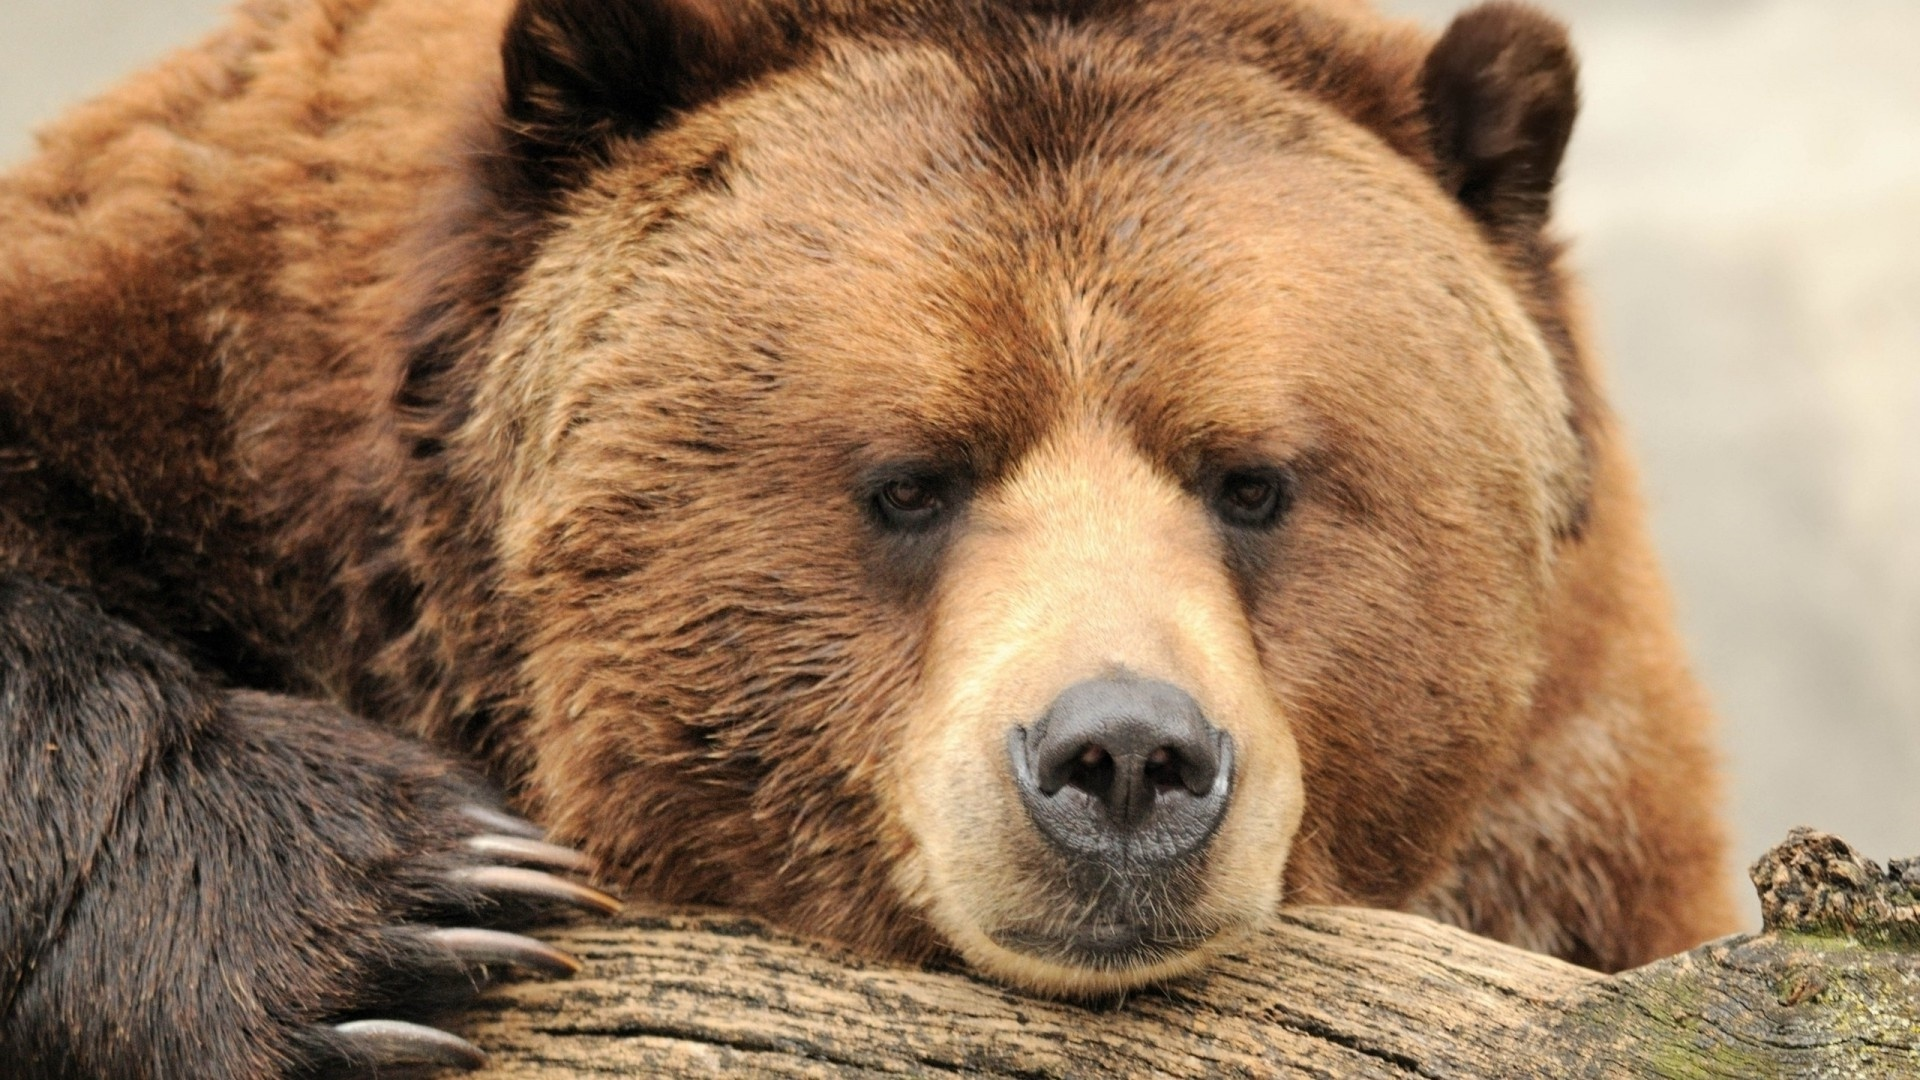 Brown Bear wallpaper for desktop